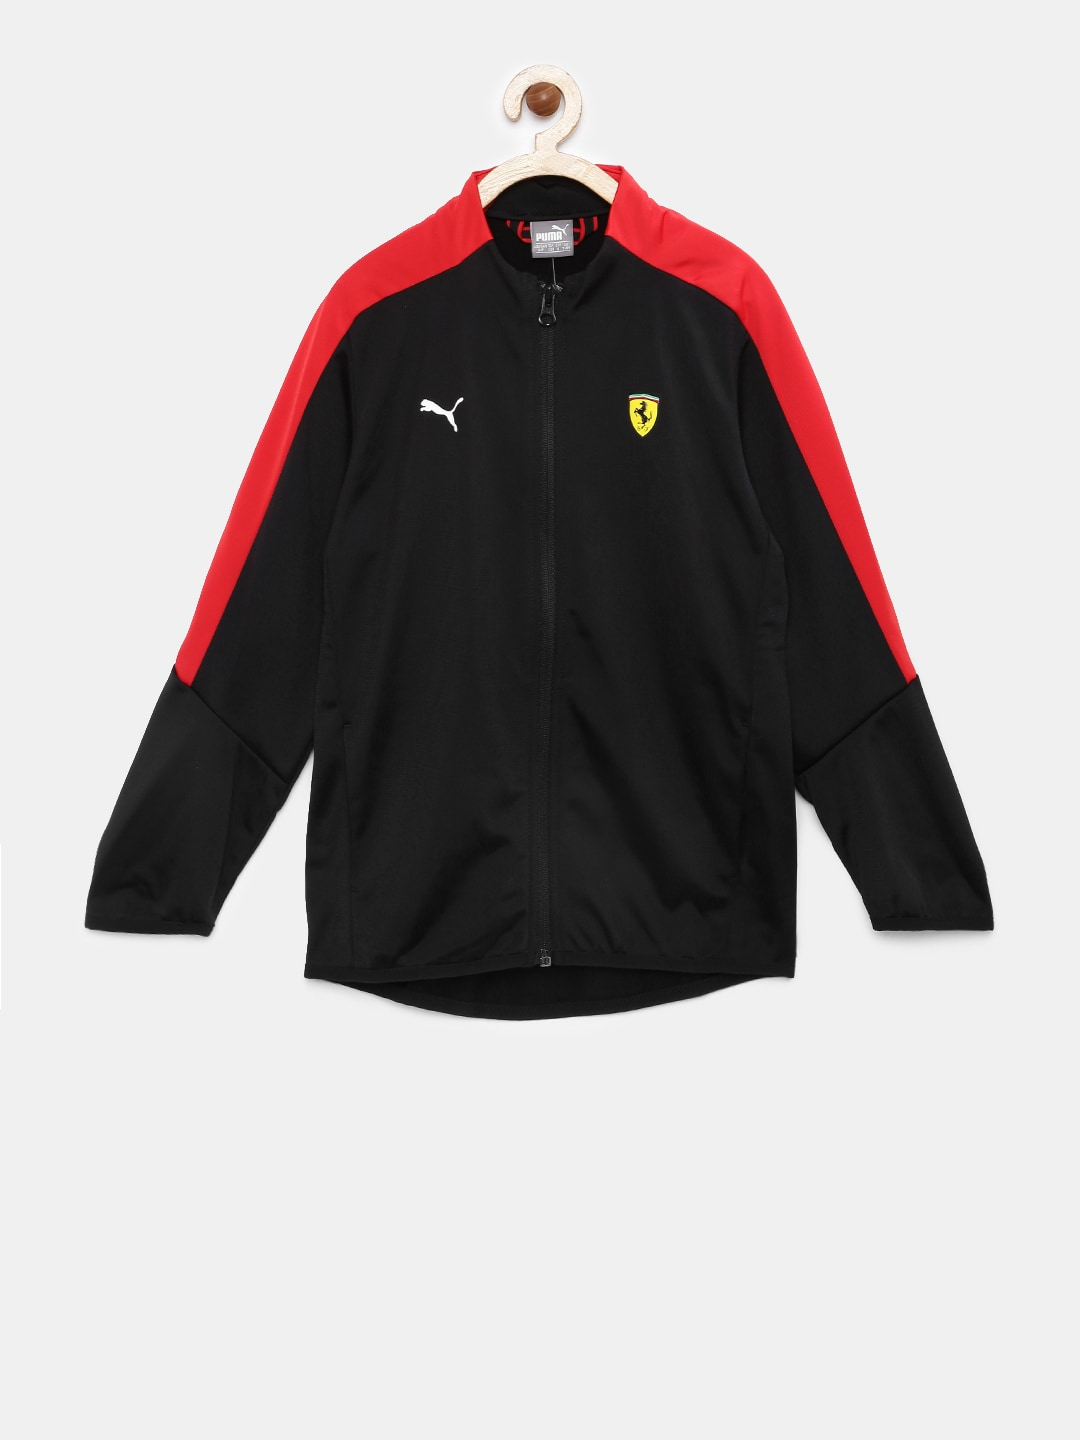 Puma Tracksuits Jackets - Buy Puma Tracksuits Jackets online in India f2253b2436a